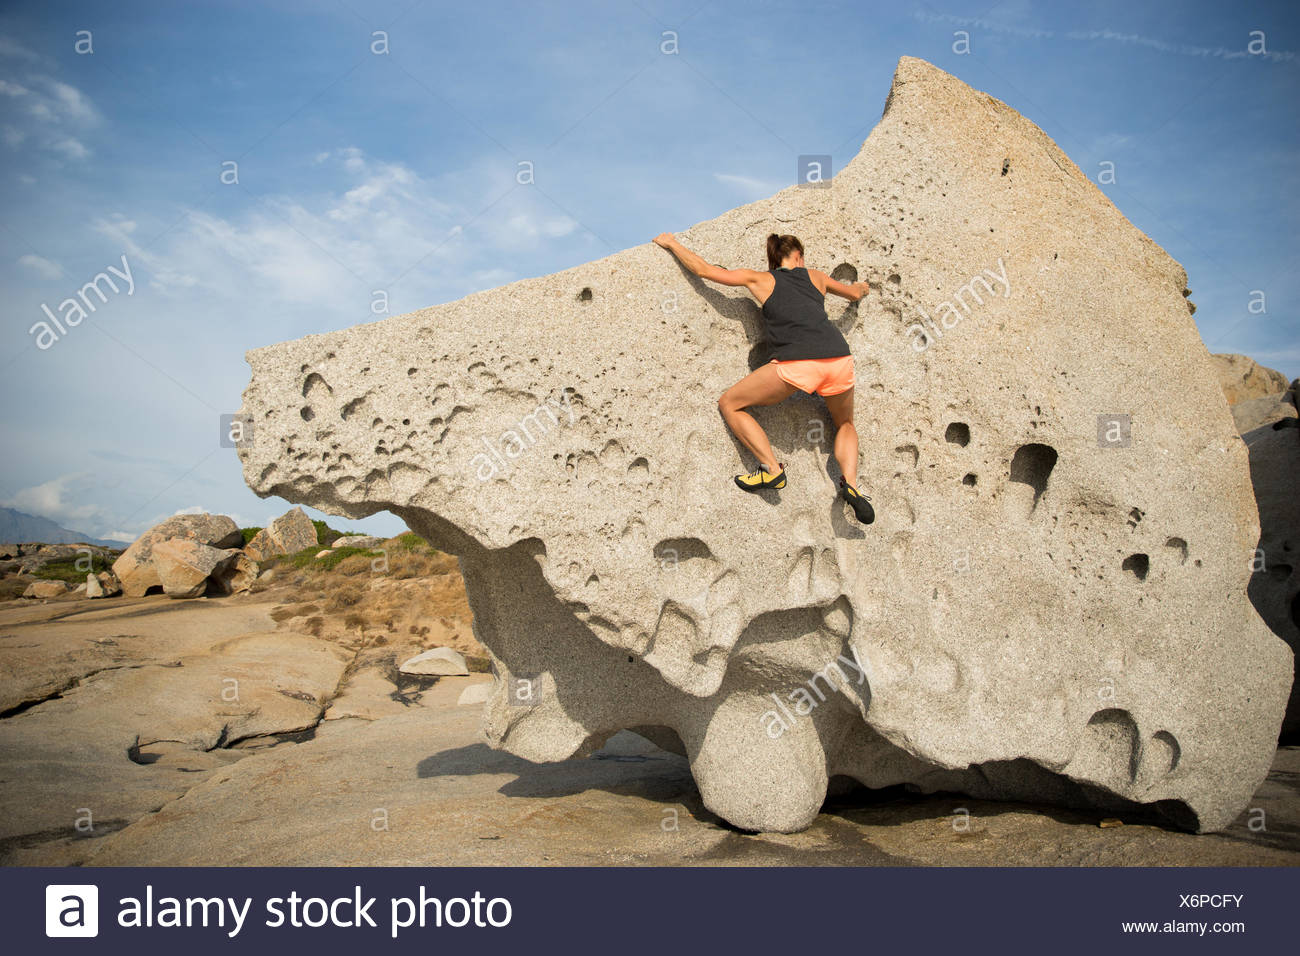 France, Corsica, Woman climbing on big single rock - Stock Image